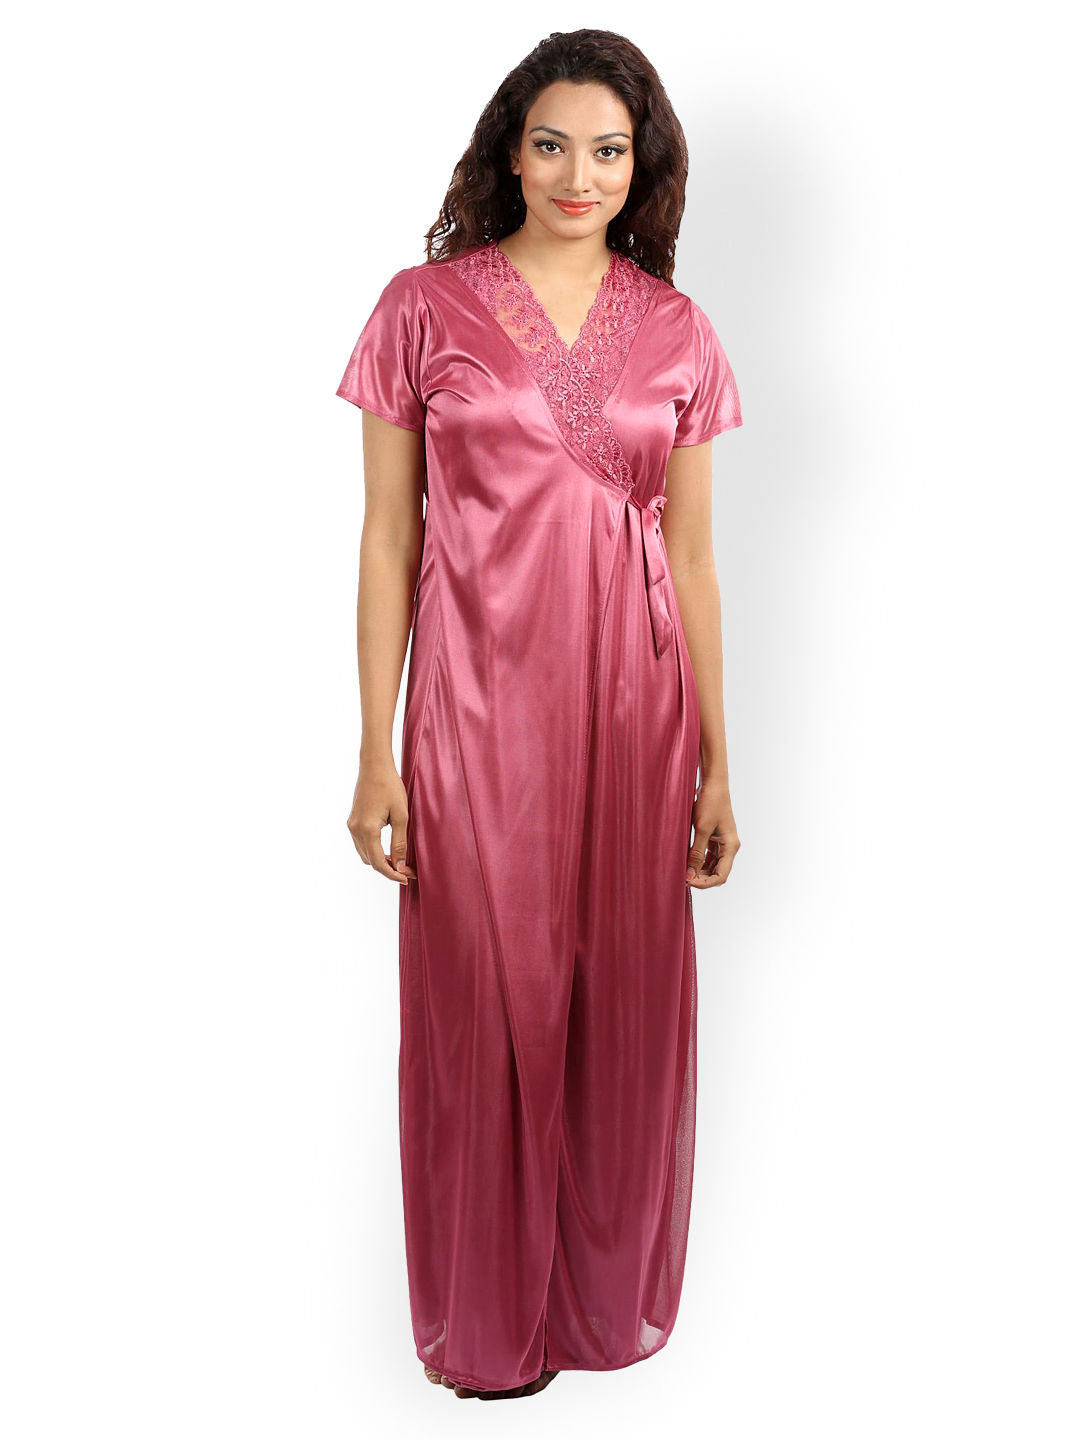 Cool Womens Lace Trimed Satin Long Gown Slips Night Gown Dress Sleepwear Nightwear | EBay